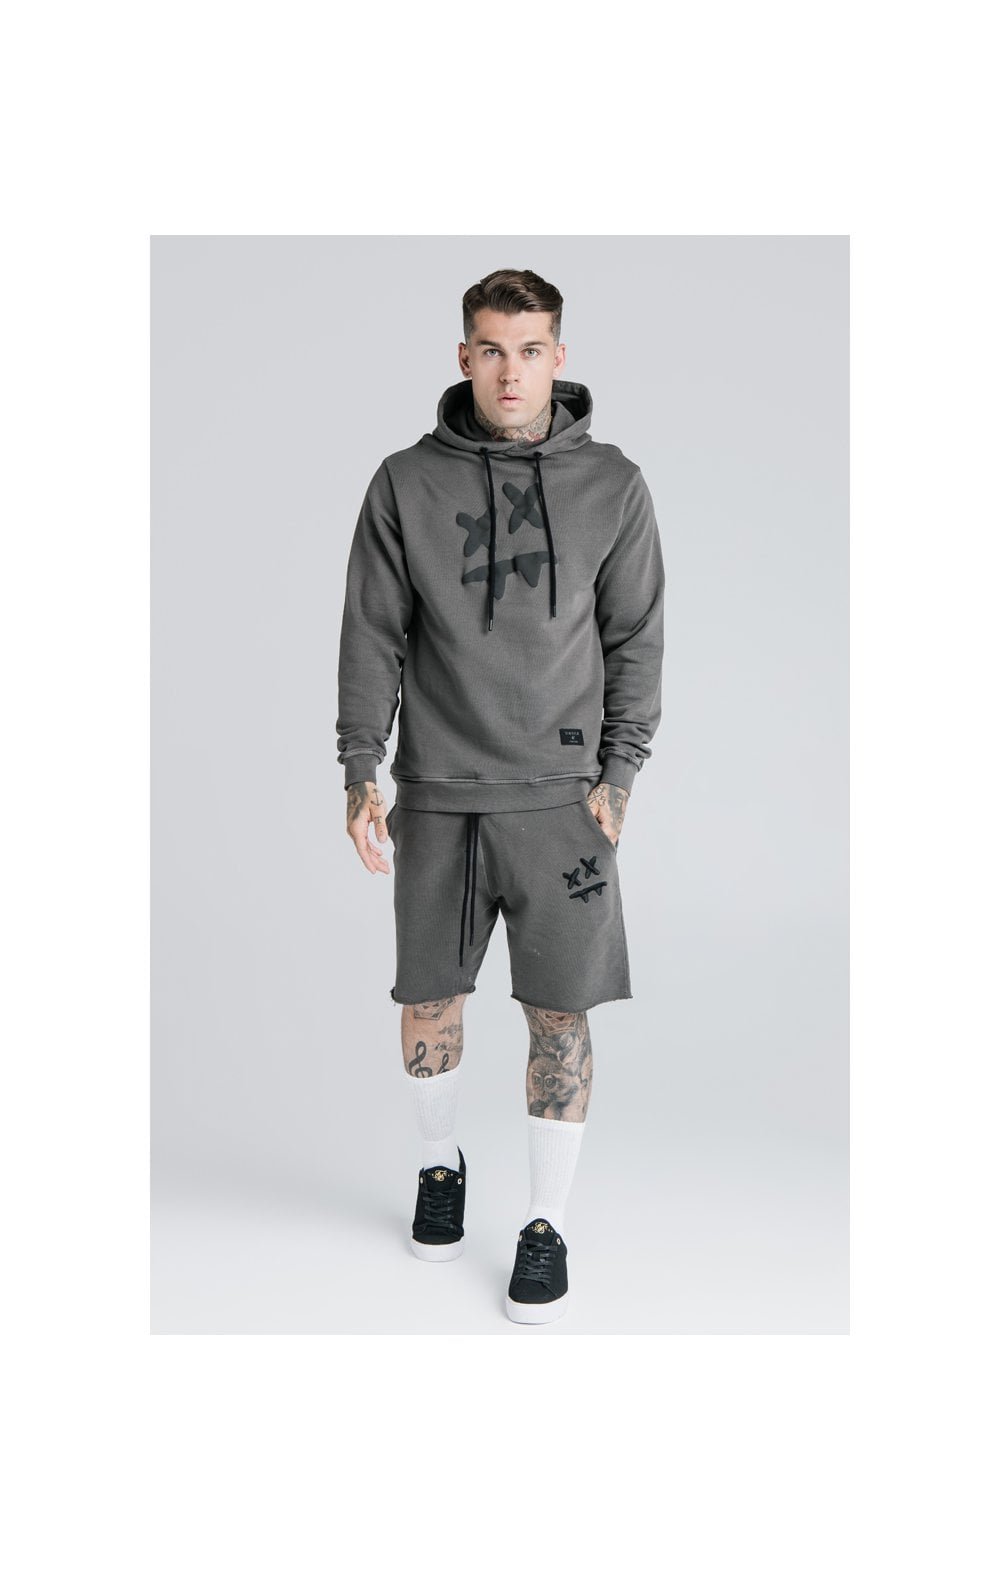 SikSilk X Steve Aoki Relaxed Shorts - Washed Grey (4)